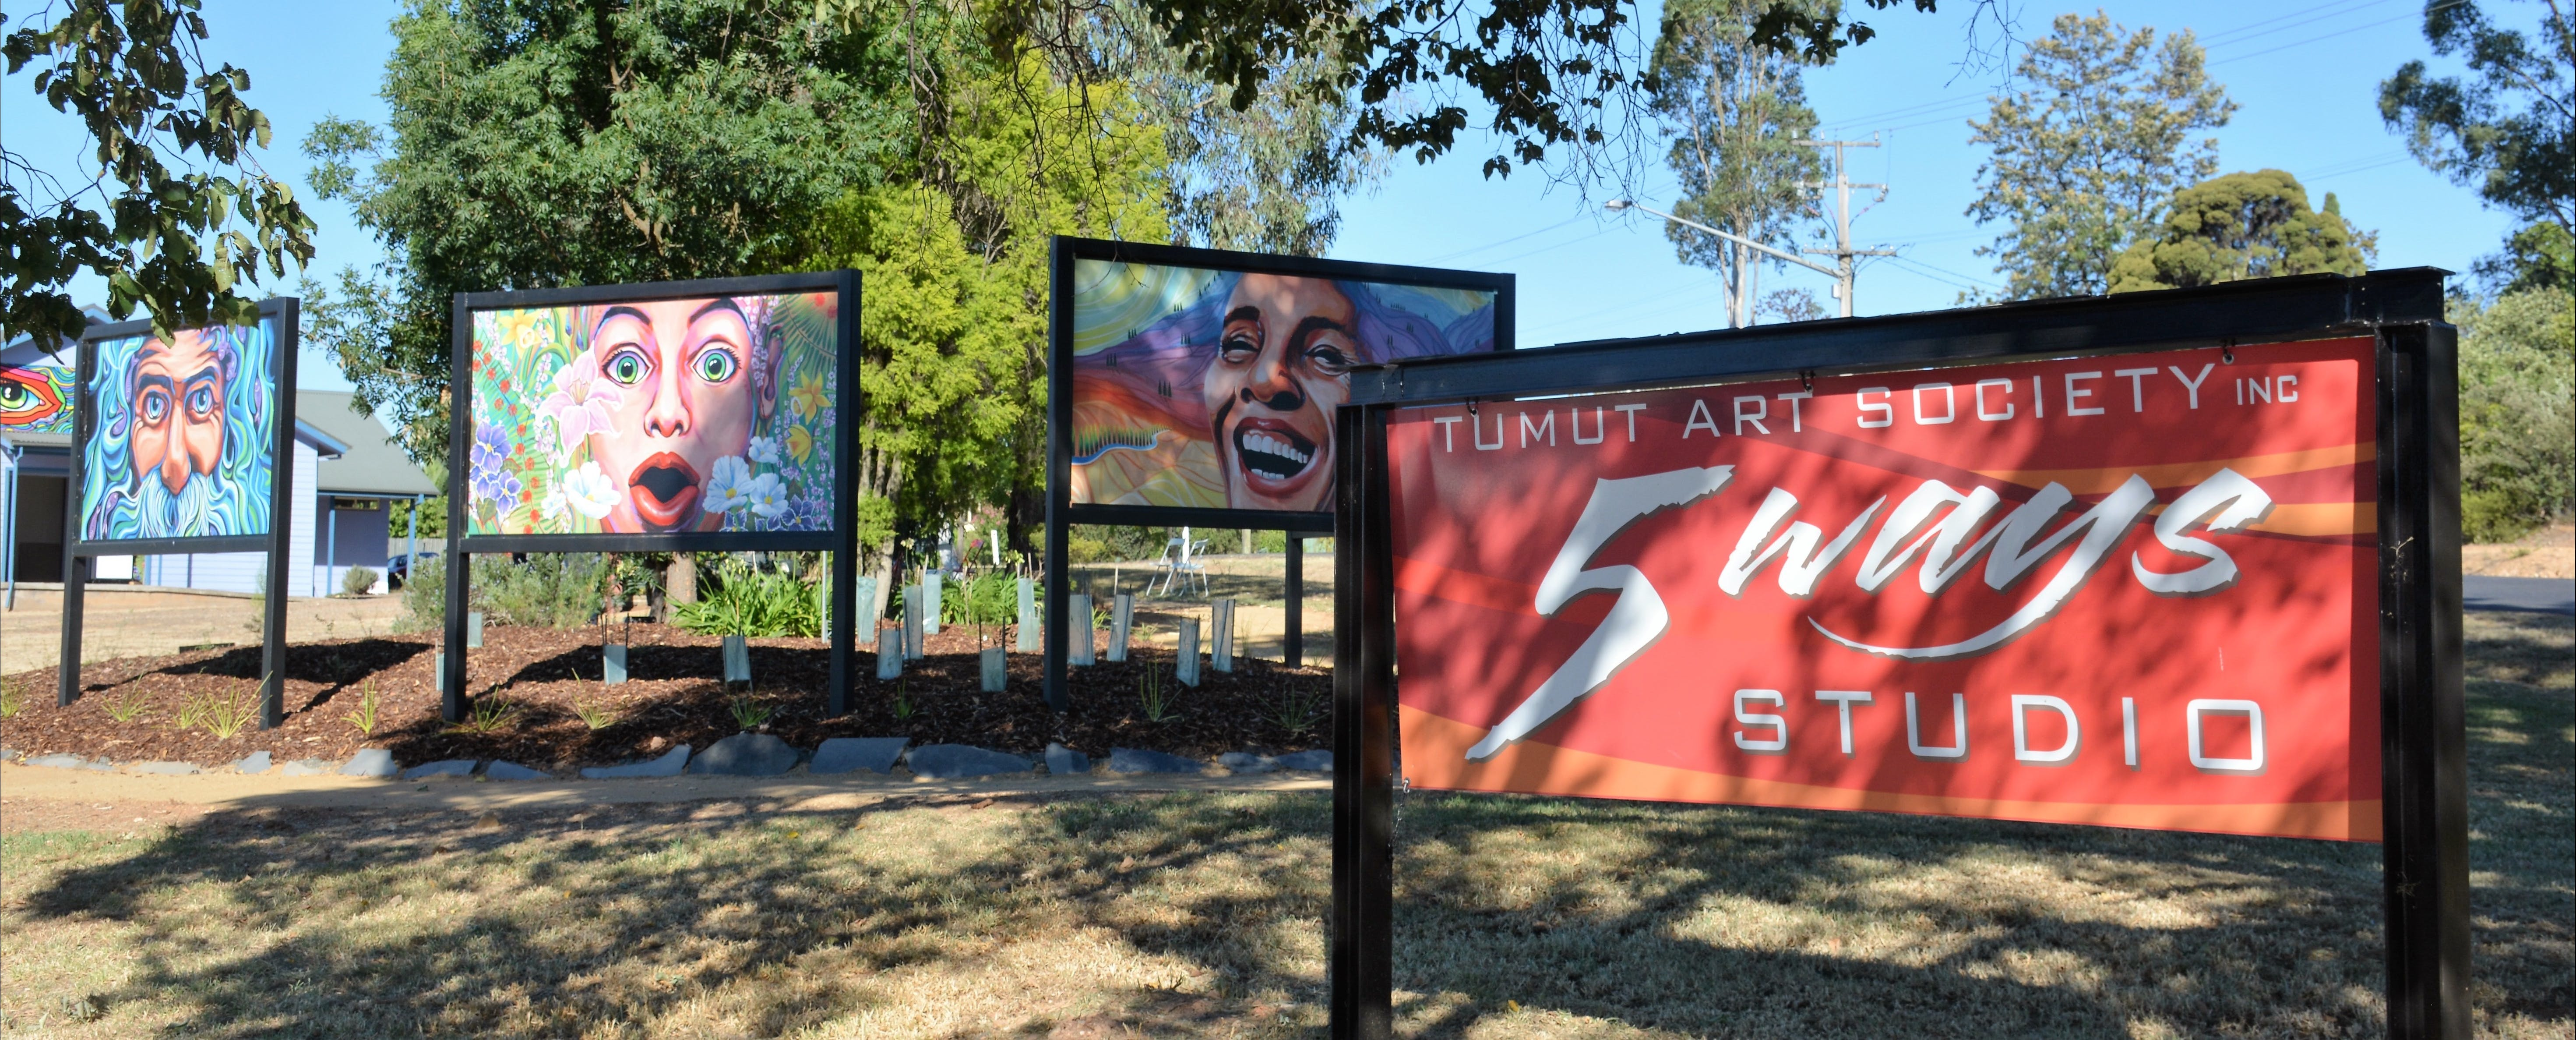 Tumut Art Society 5Ways Gallery